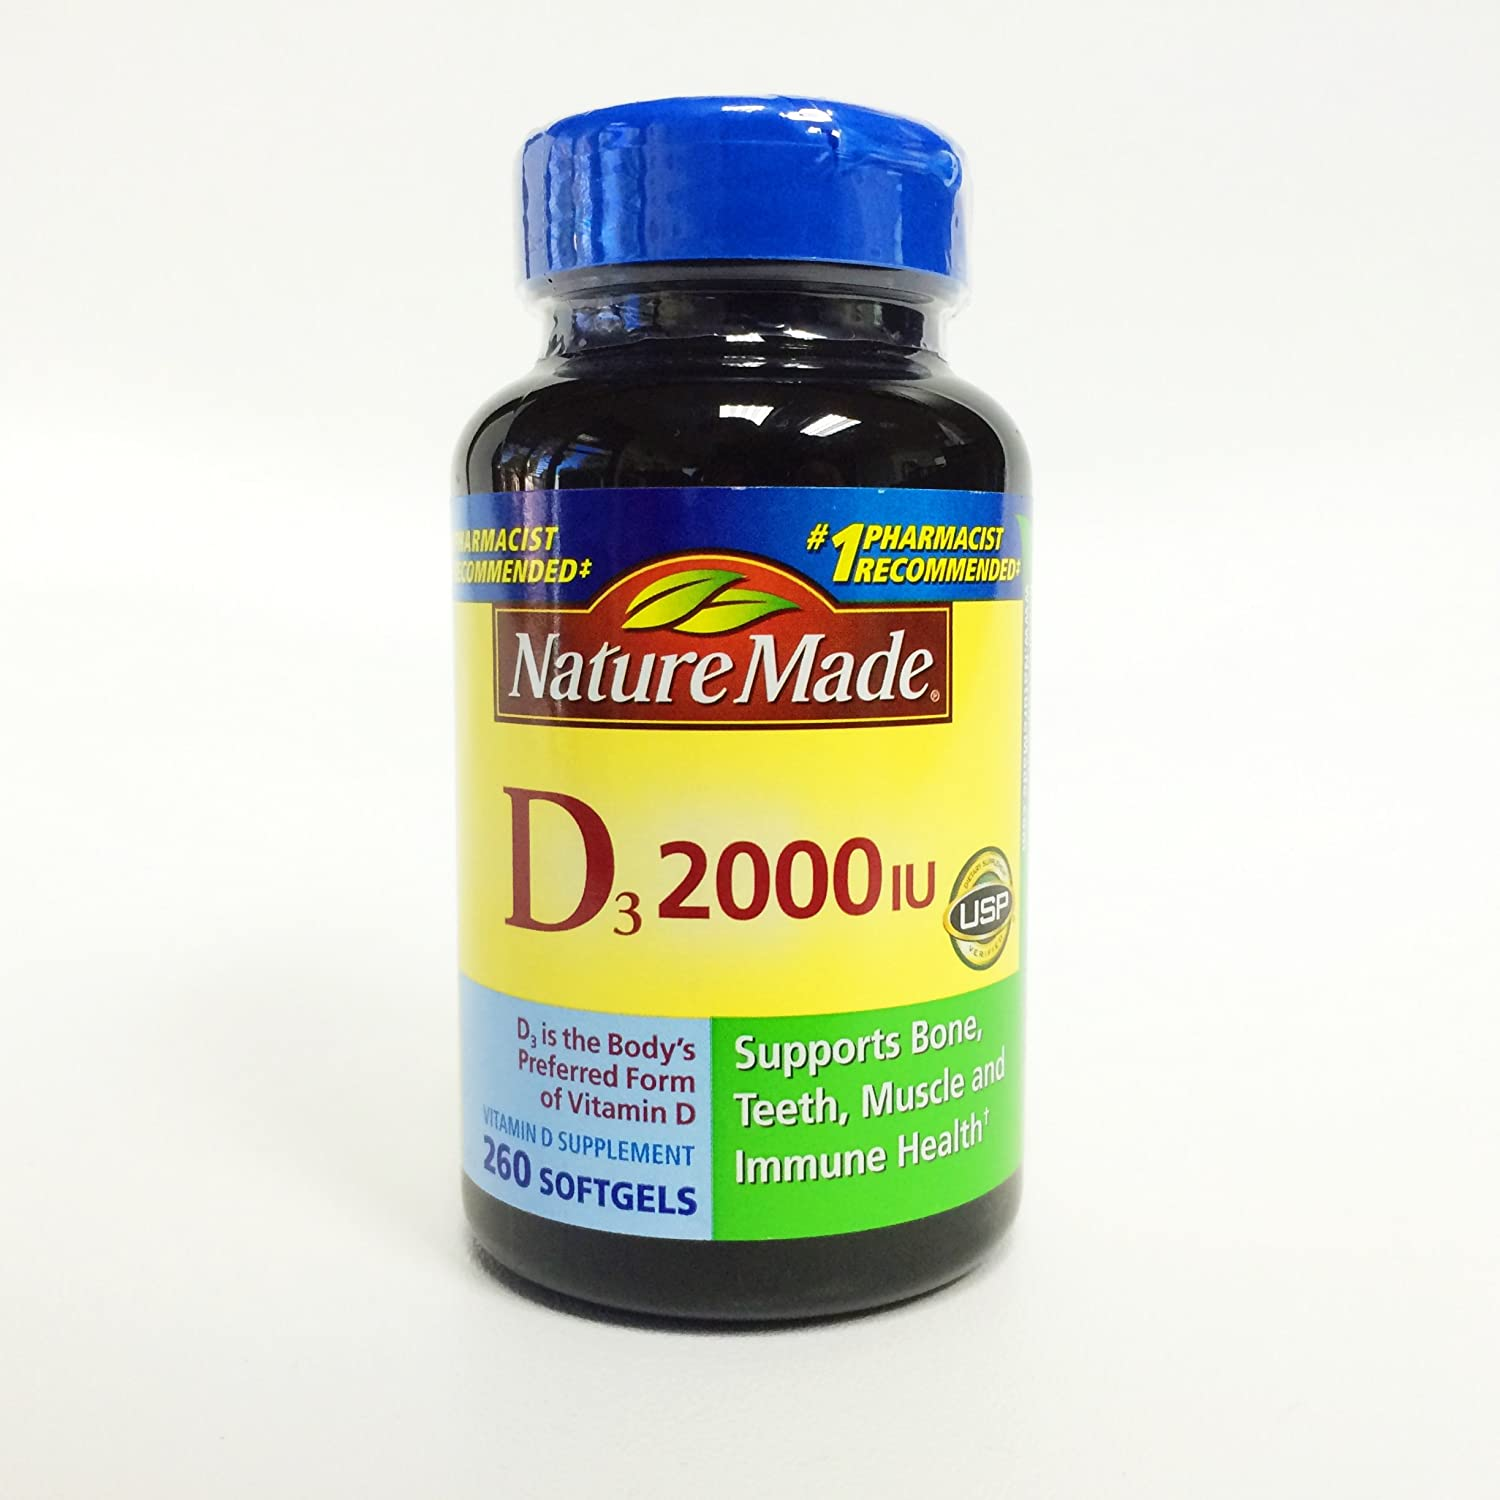 Nature Made D3 2000 IU, 260 Softgels